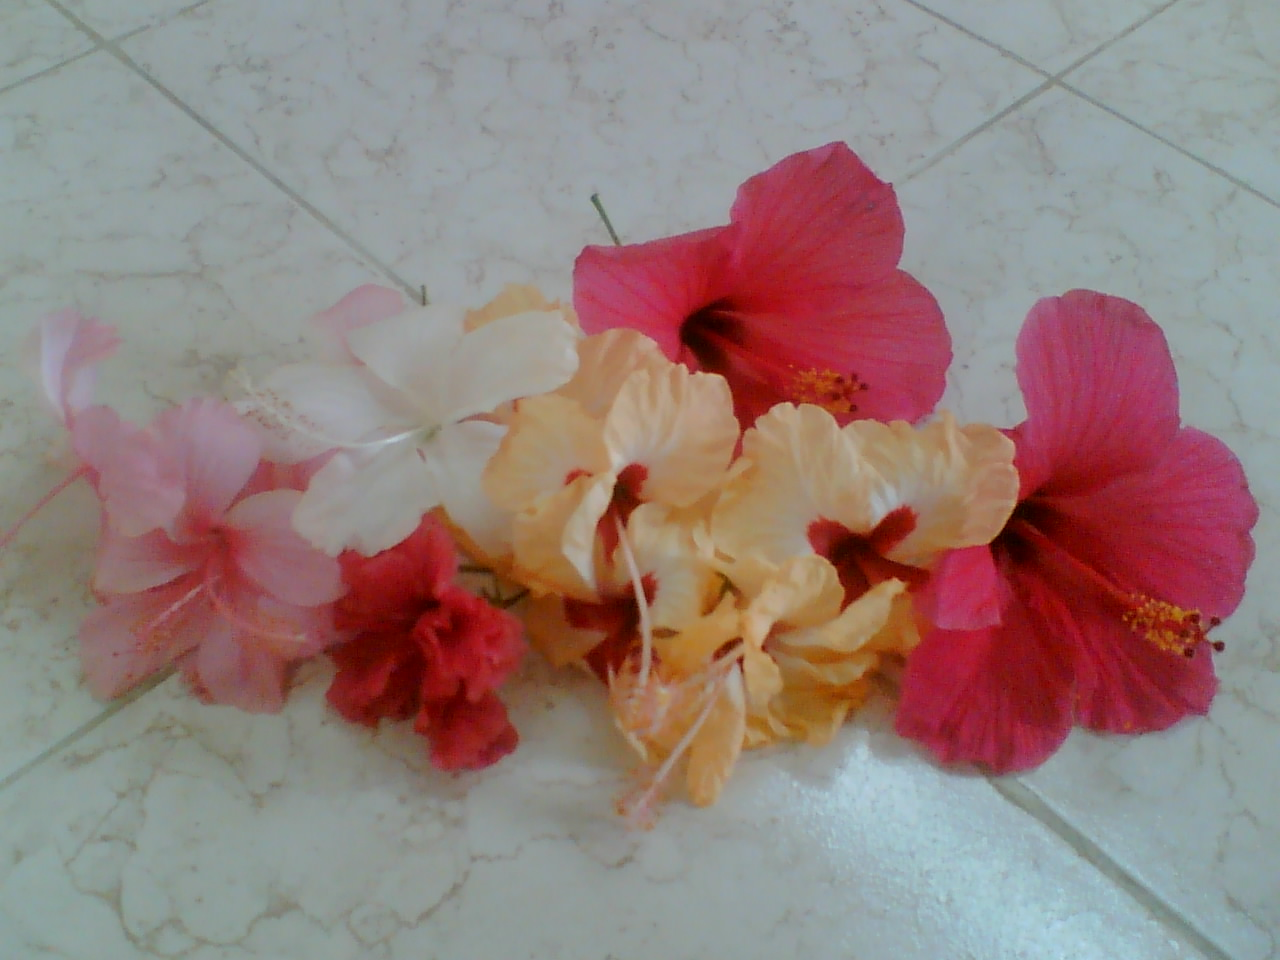 Its my life my world my personal blog describing my thoughts in beautiful flowers from my farm house izmirmasajfo